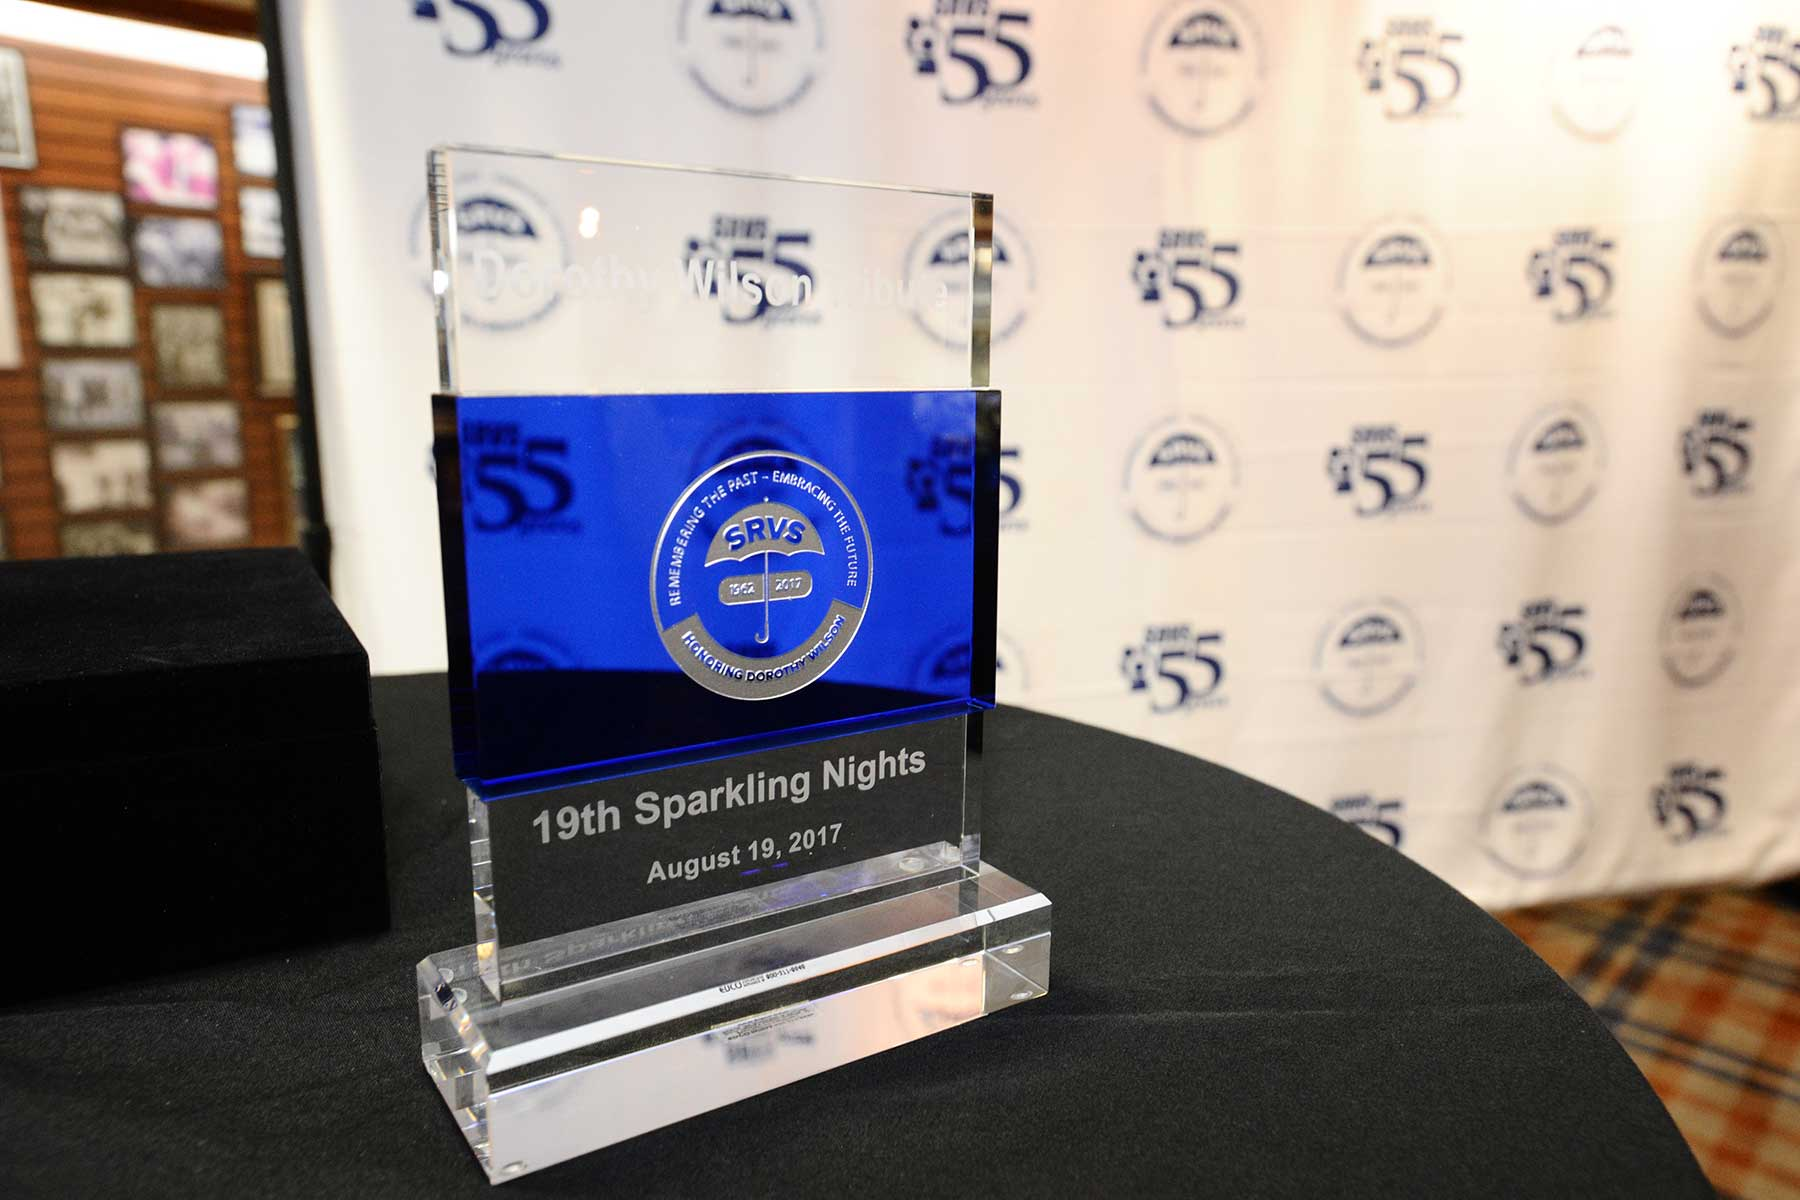 SRVS Sparkling Nights 201